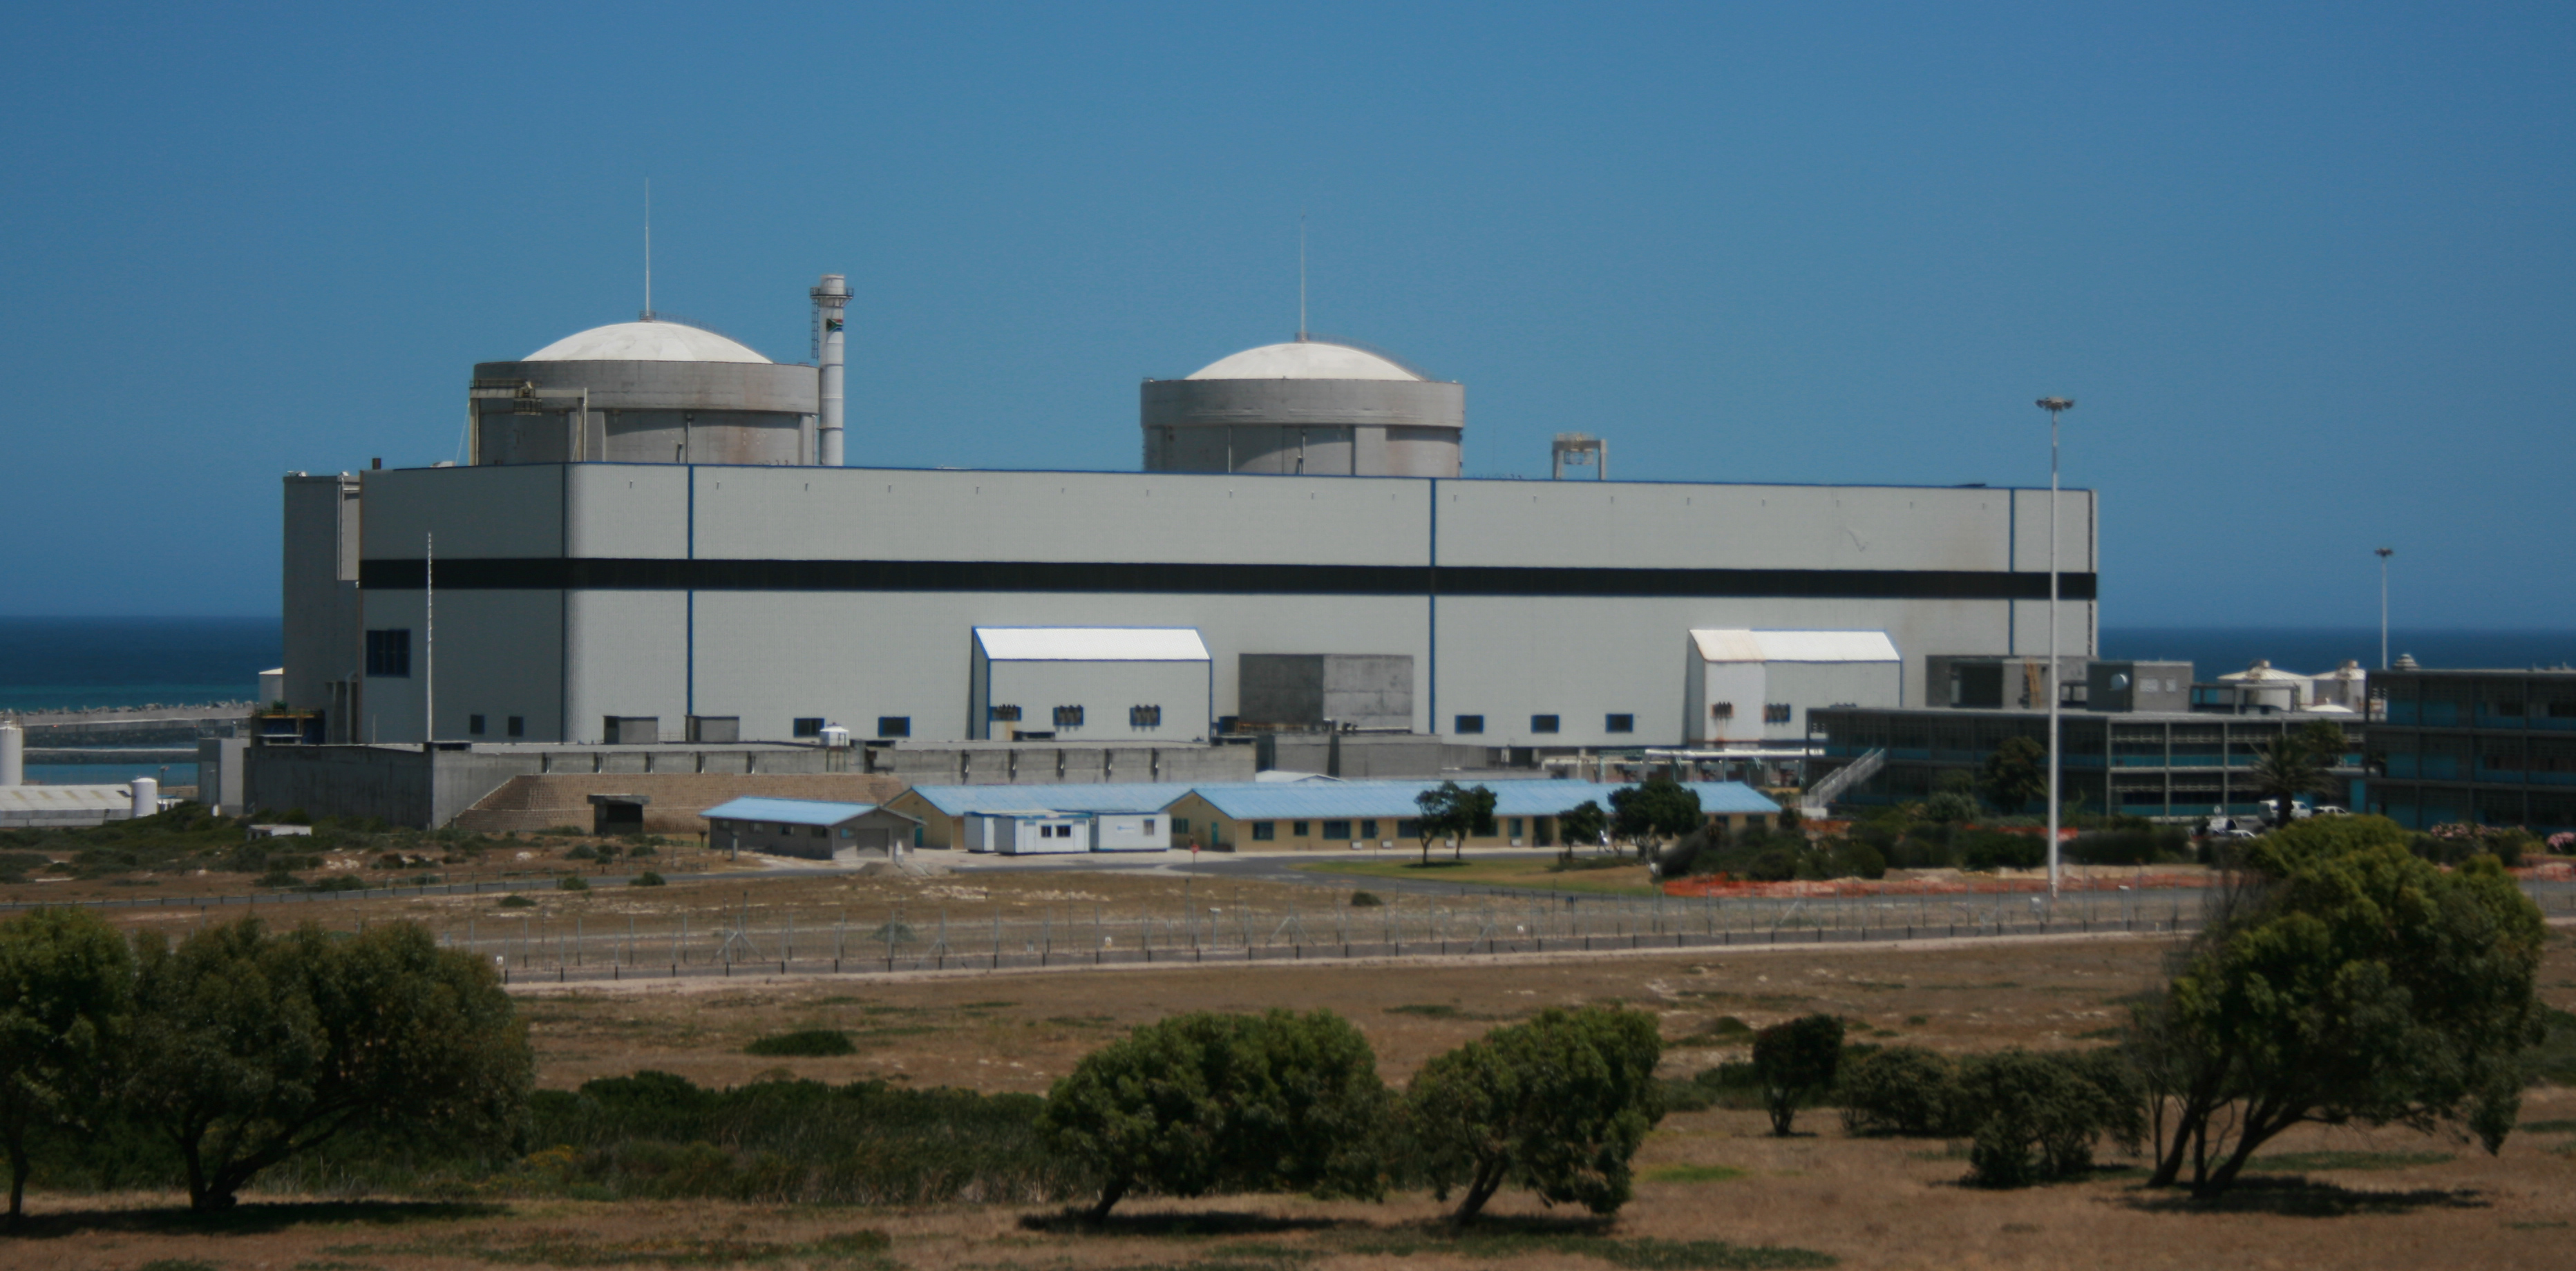 Koeberg Power Plant